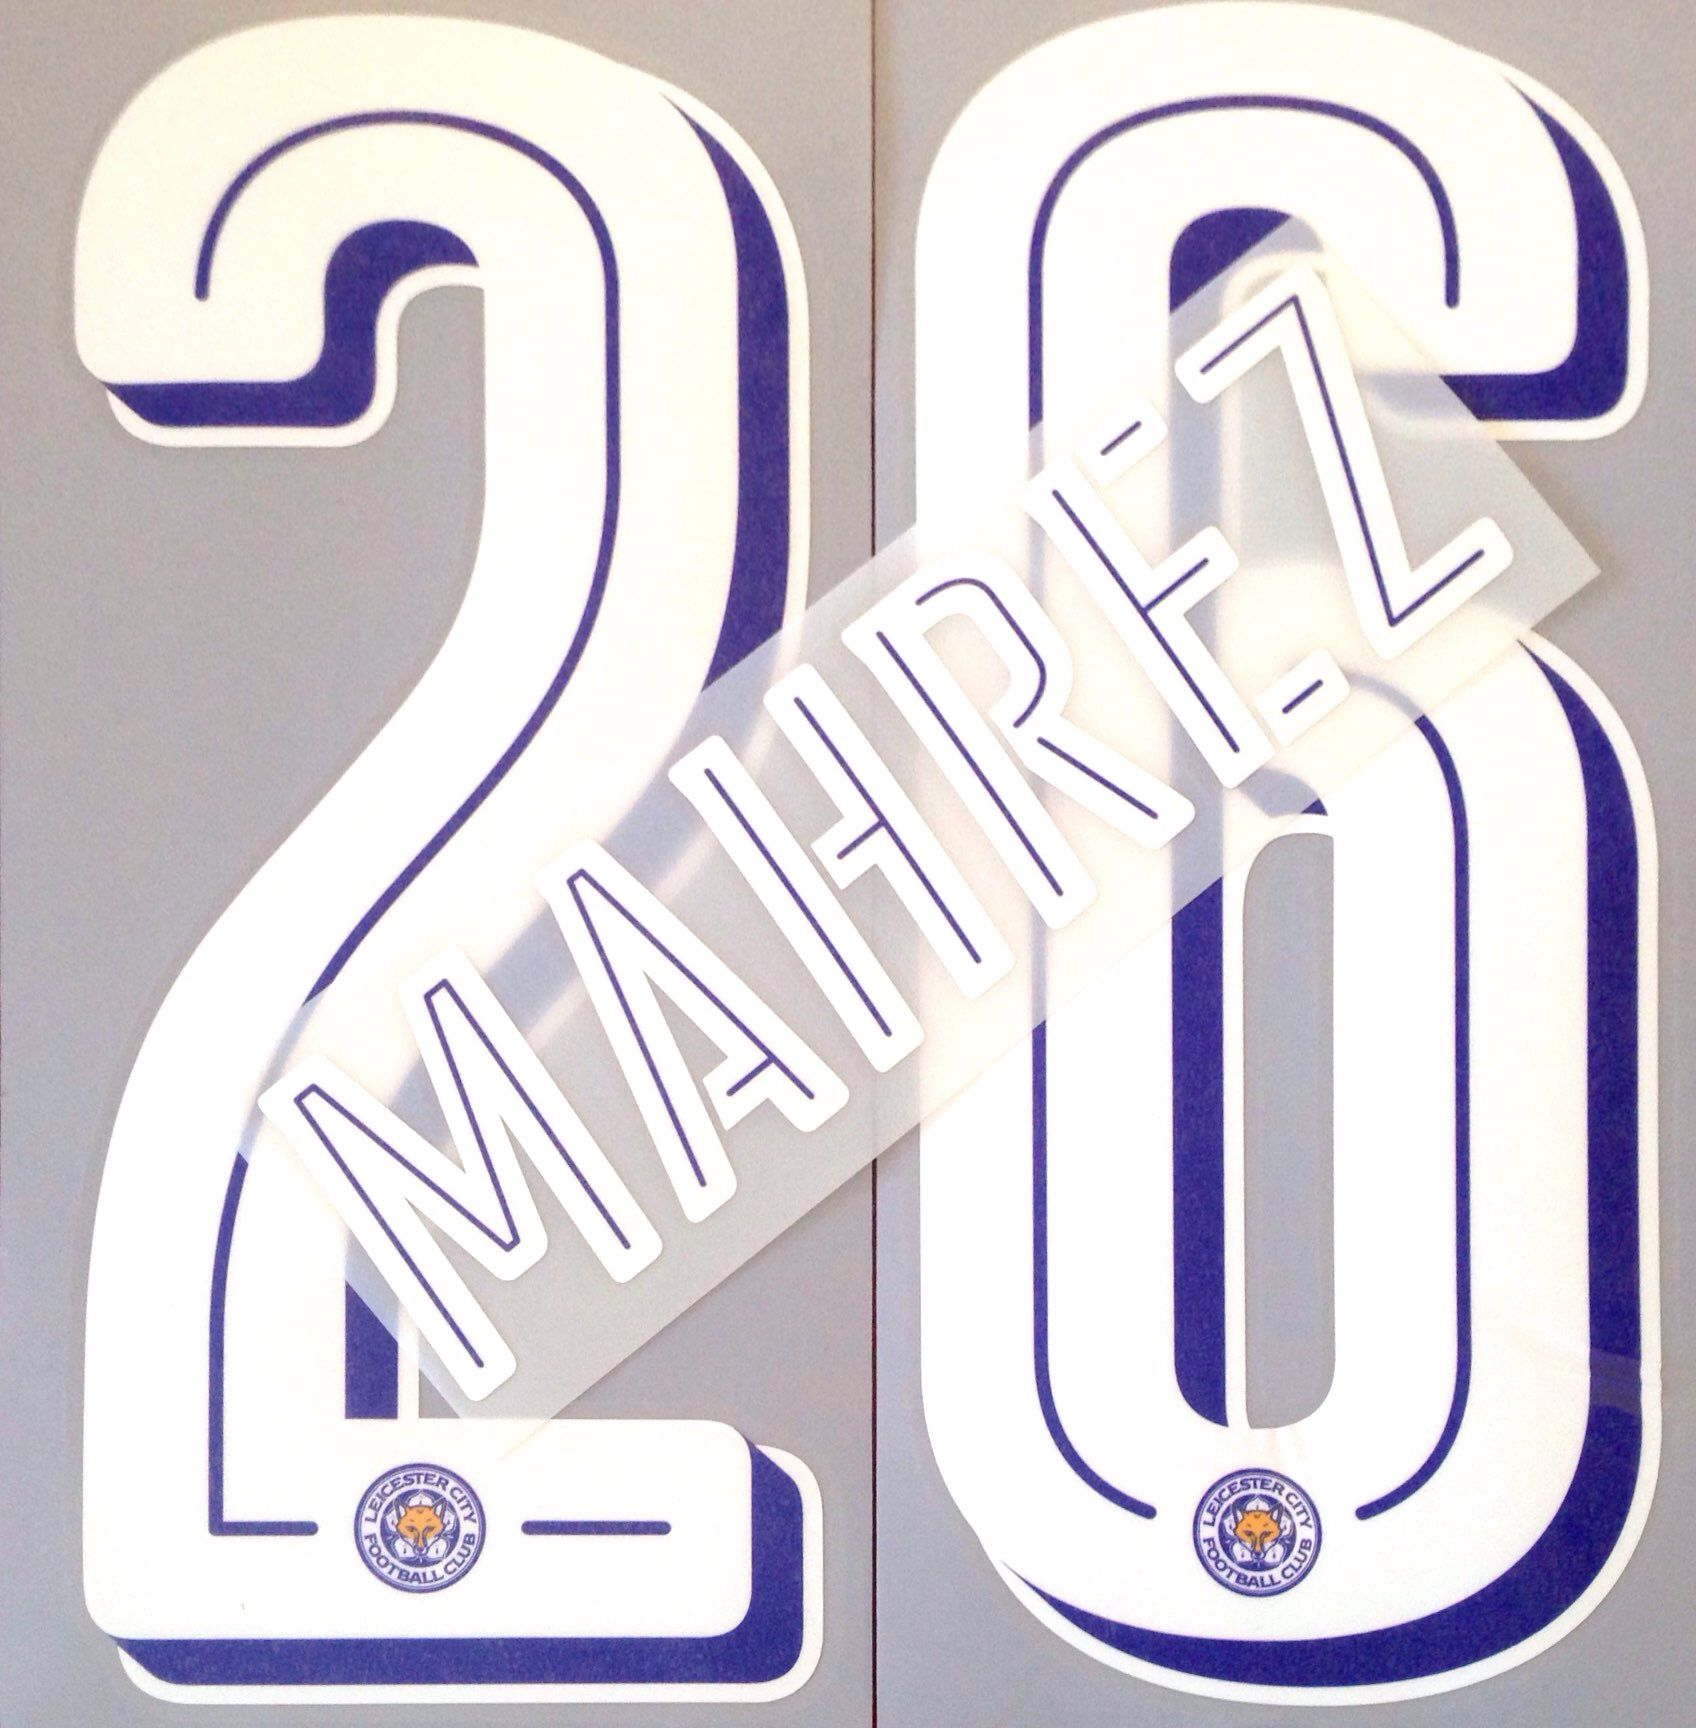 lowest price 96be7 ad3f5 2016-17 Leicester City UCL Home & Away Shirt MAHREZ#26 SportingiD Name  Number Set